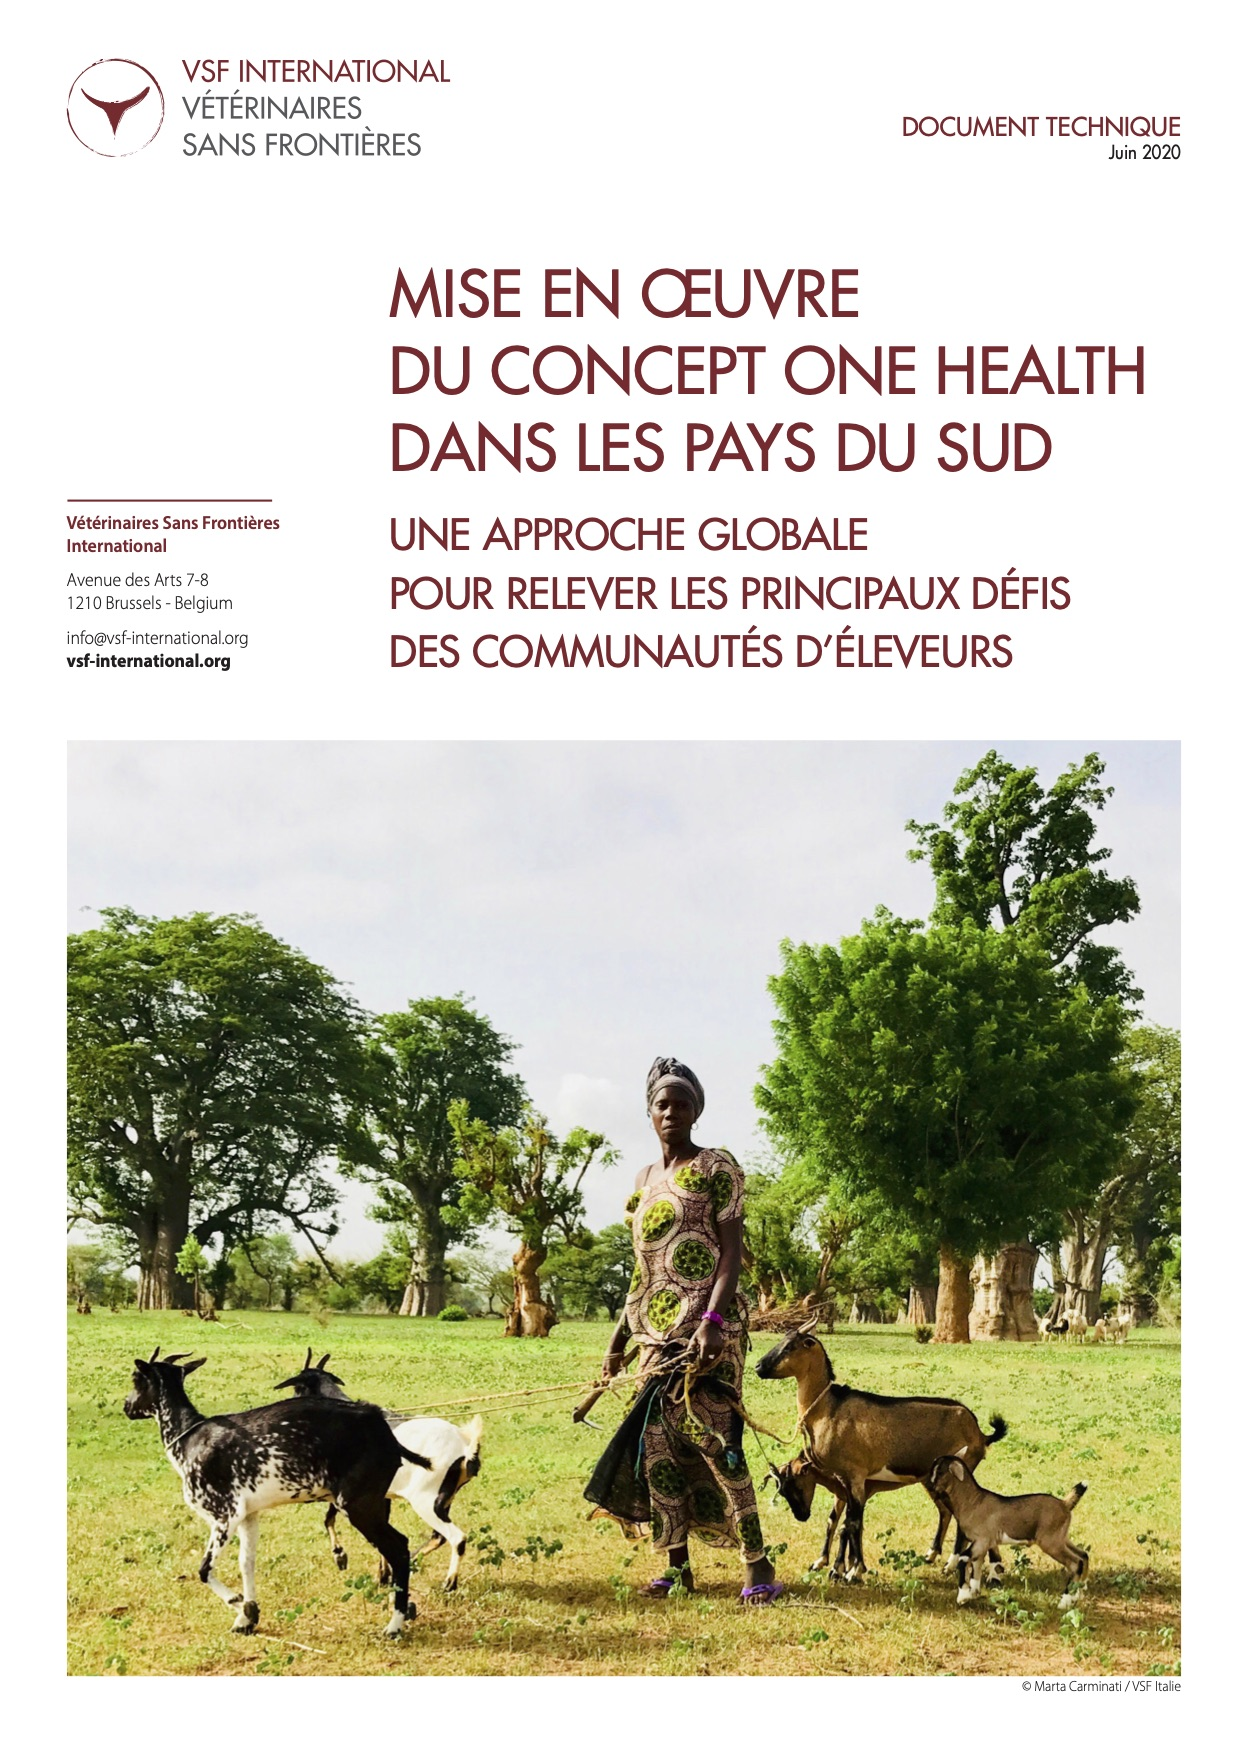 Mise en œuvre du concept One Health dans les pays du Sud : document technique de VSF-International Image principale